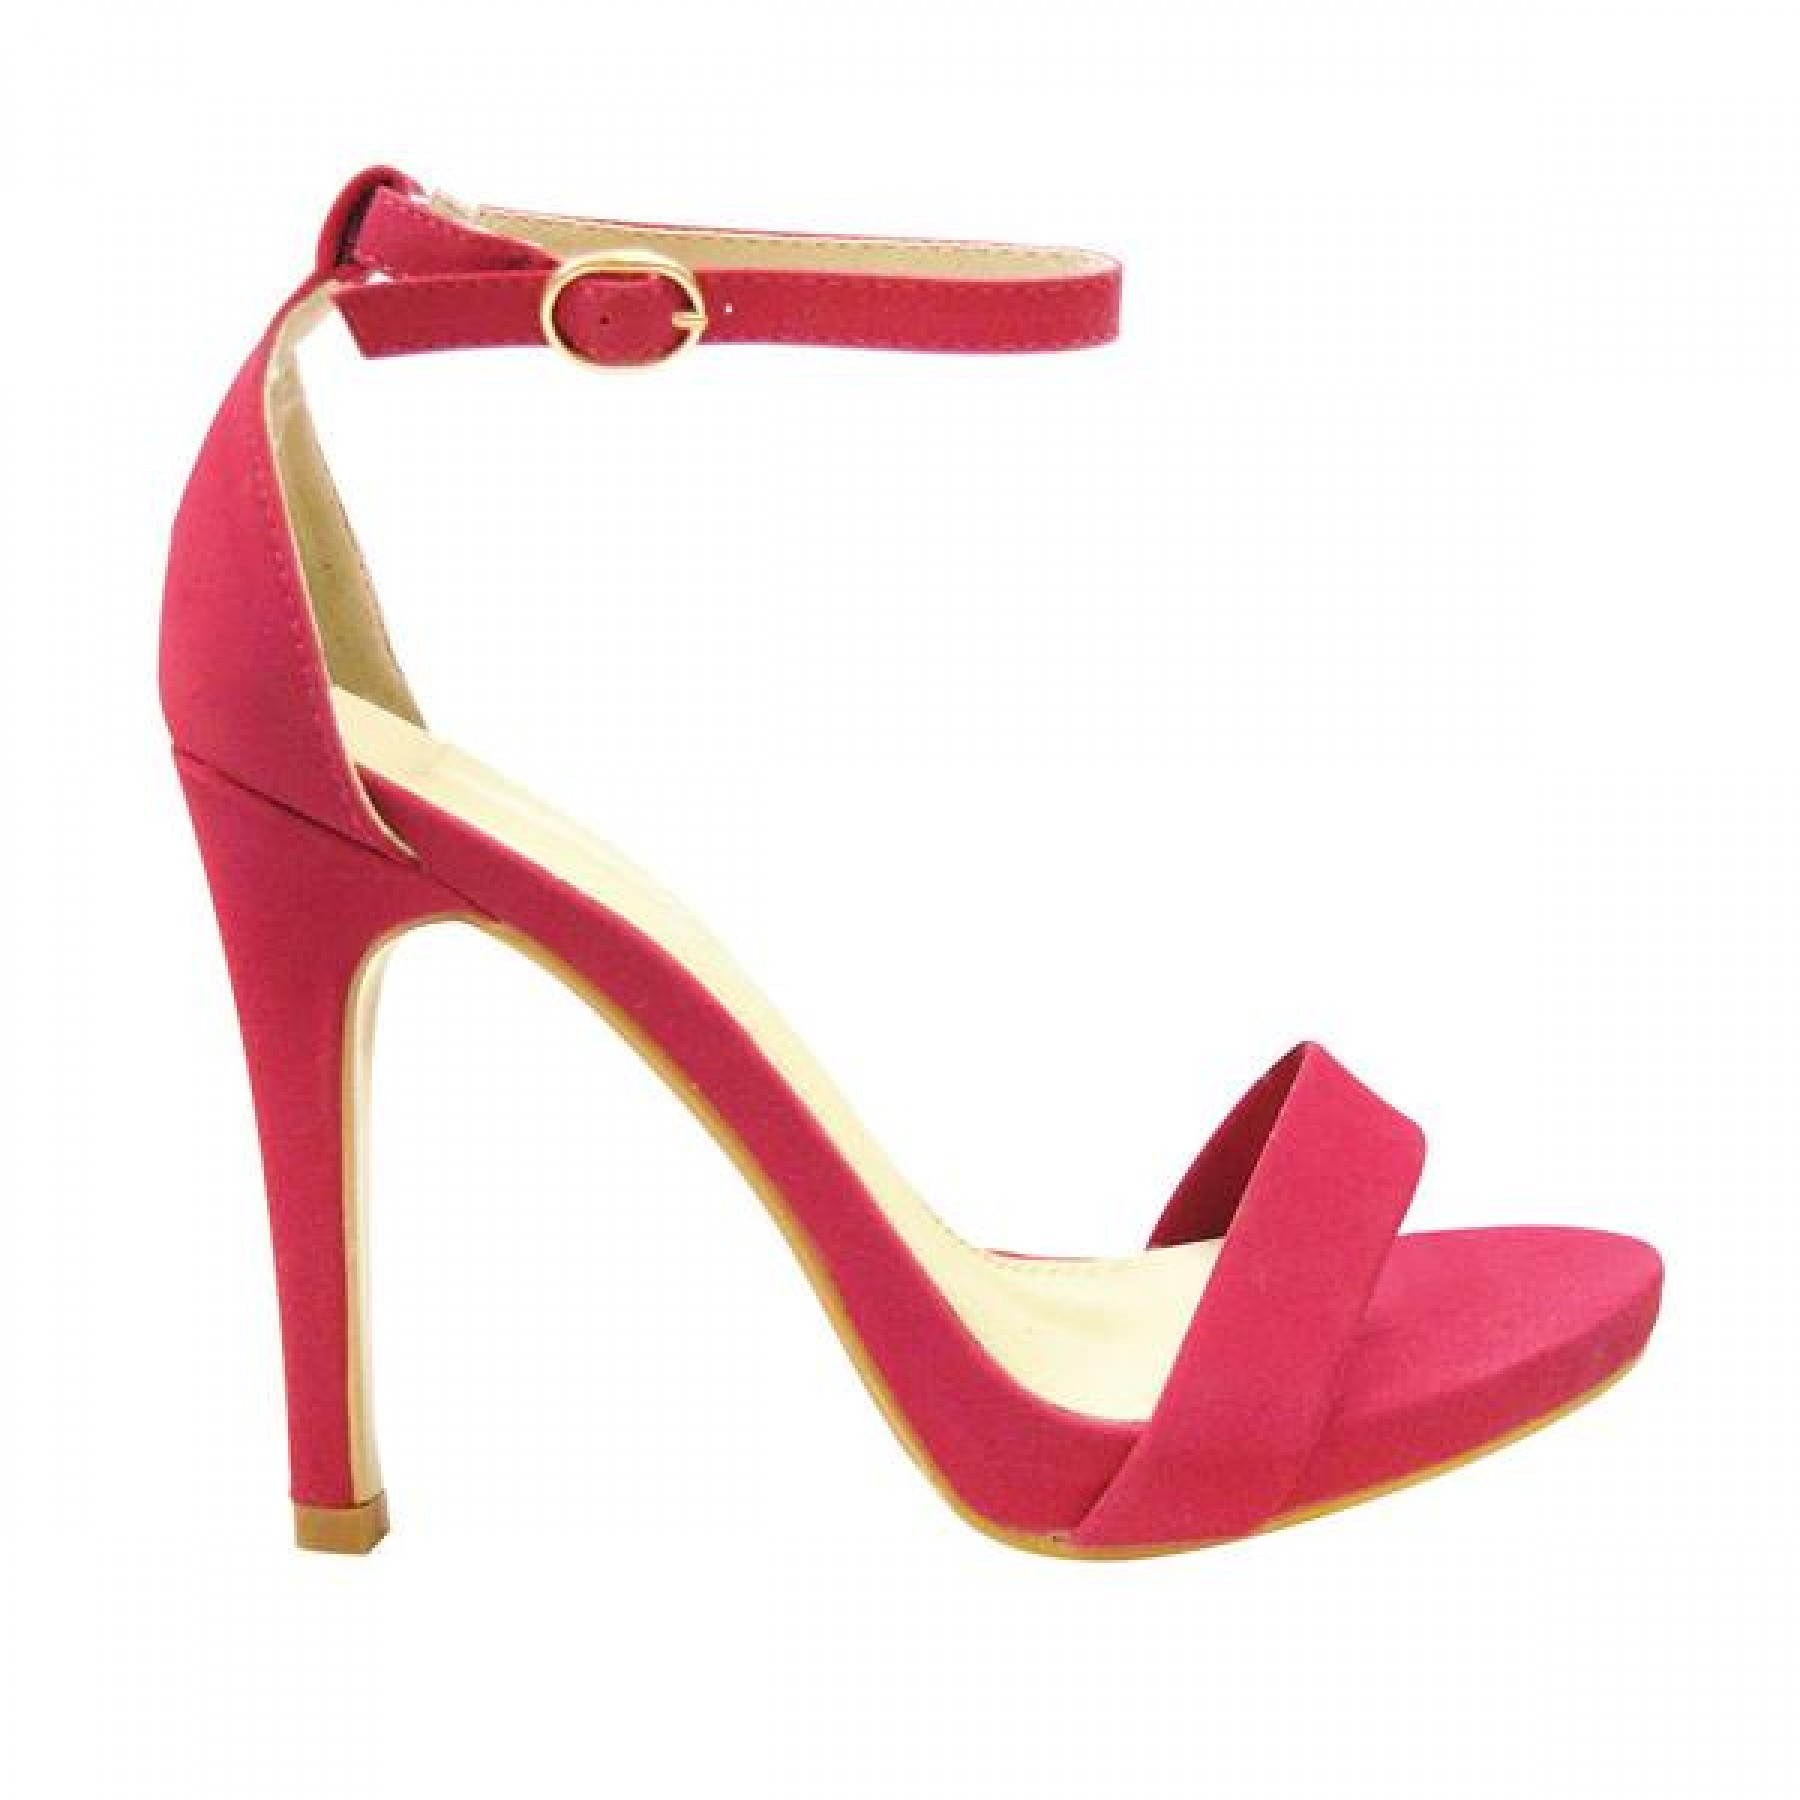 Women's Fuchsia Manmade Livveey 4-inch Heeled Sandal with Glowing Ankle Buckle